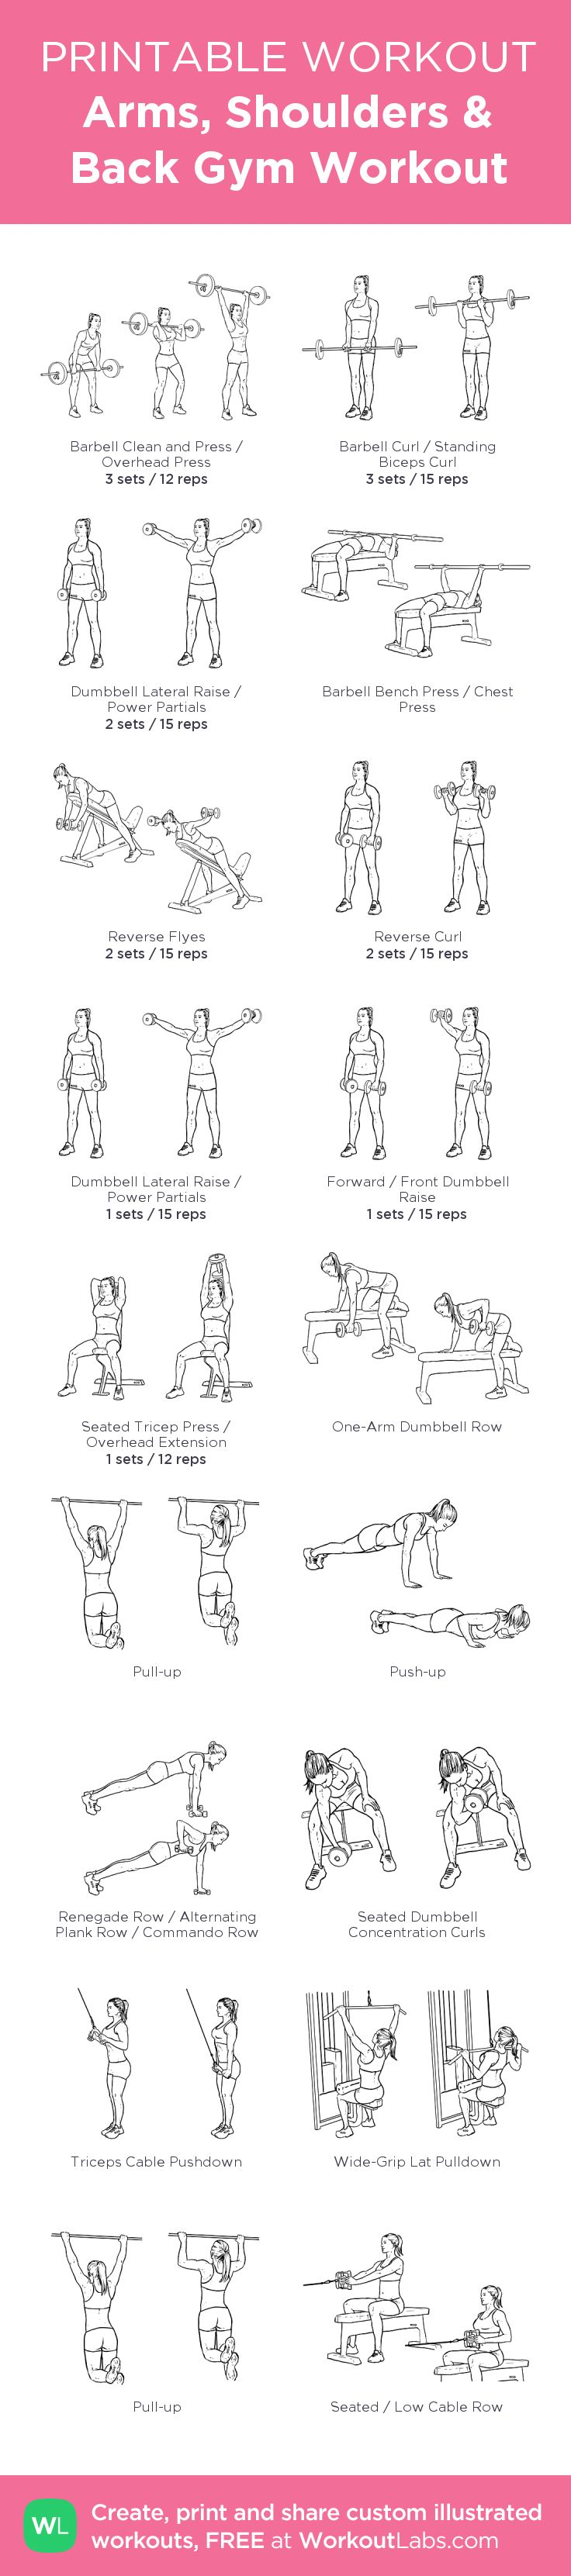 Arms, Shoulders & Back Gym Workout